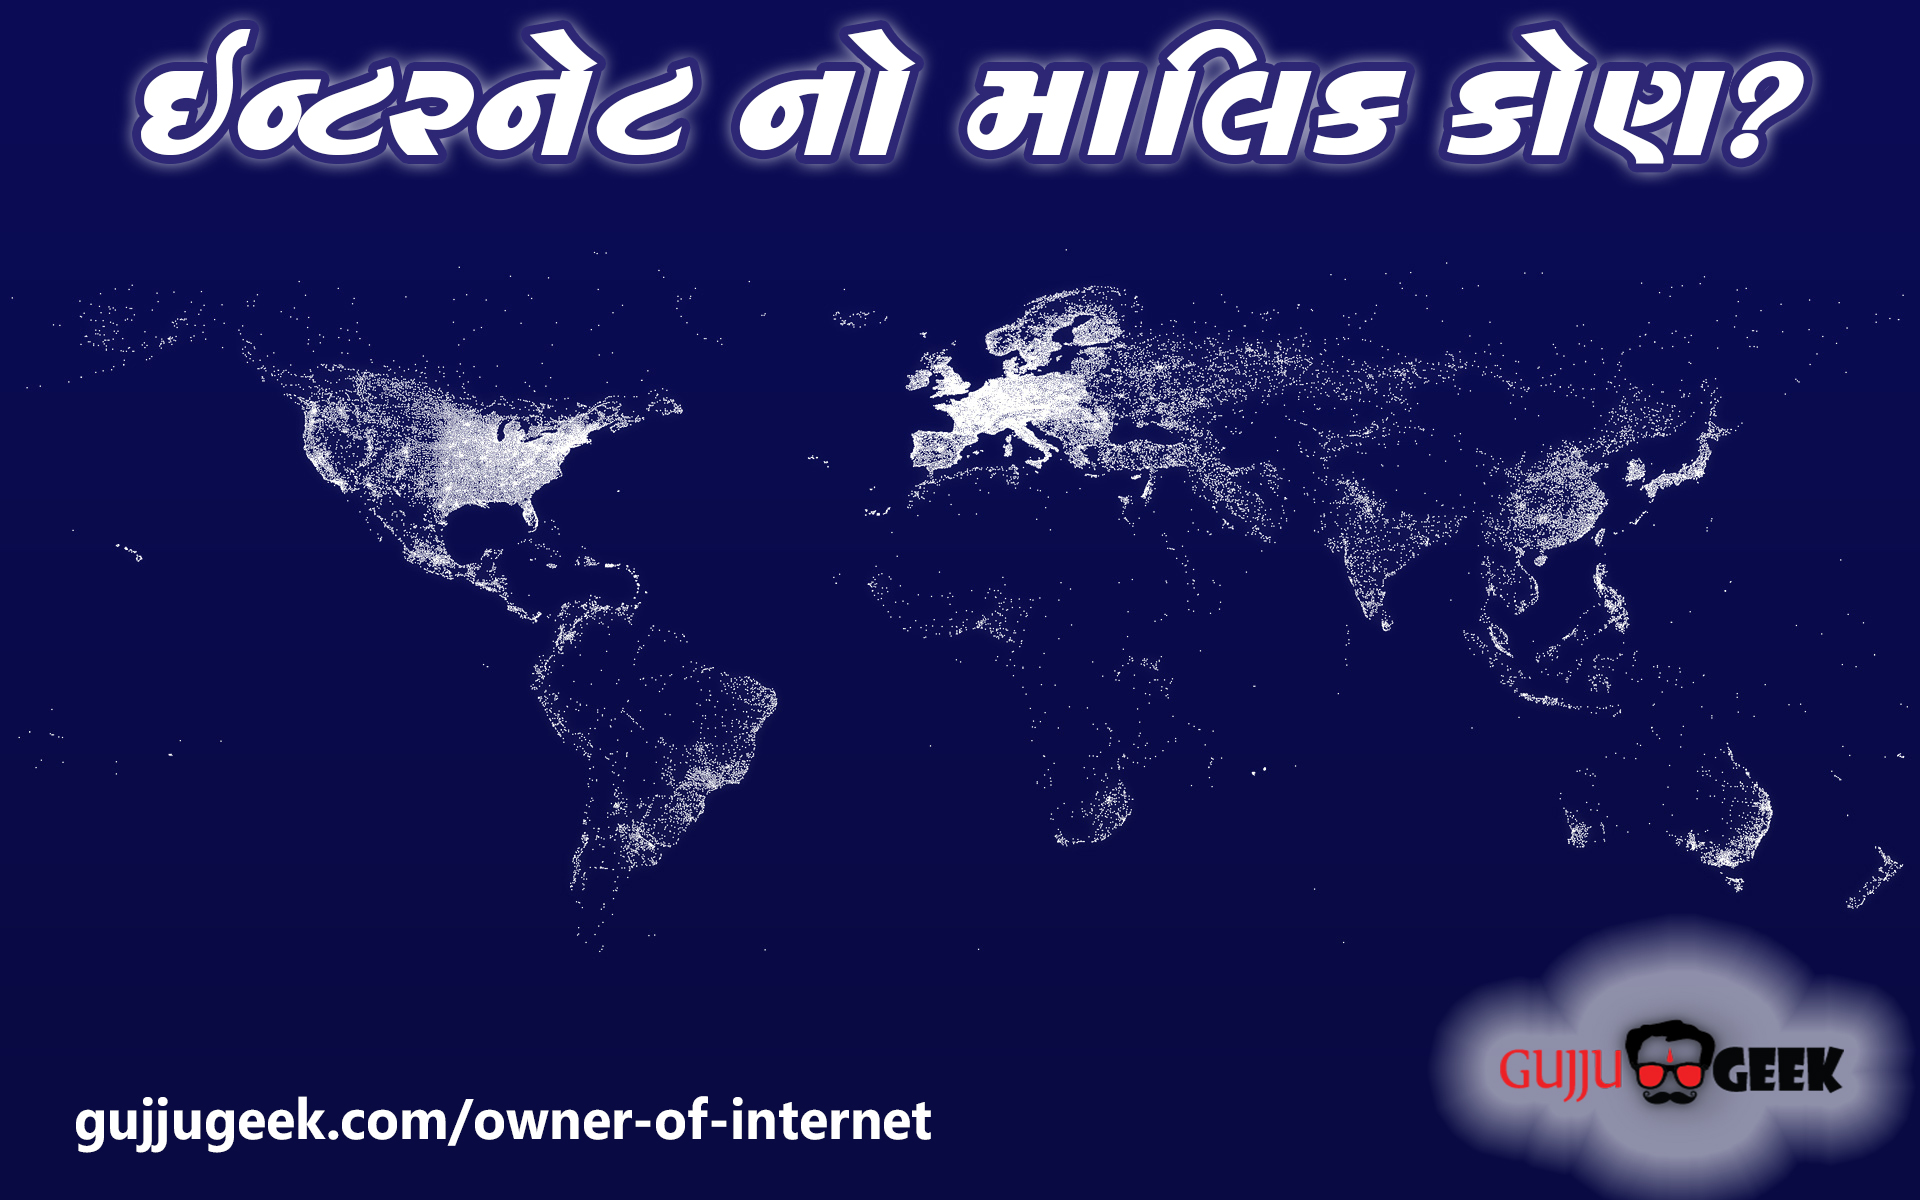 who is owner of internet ?